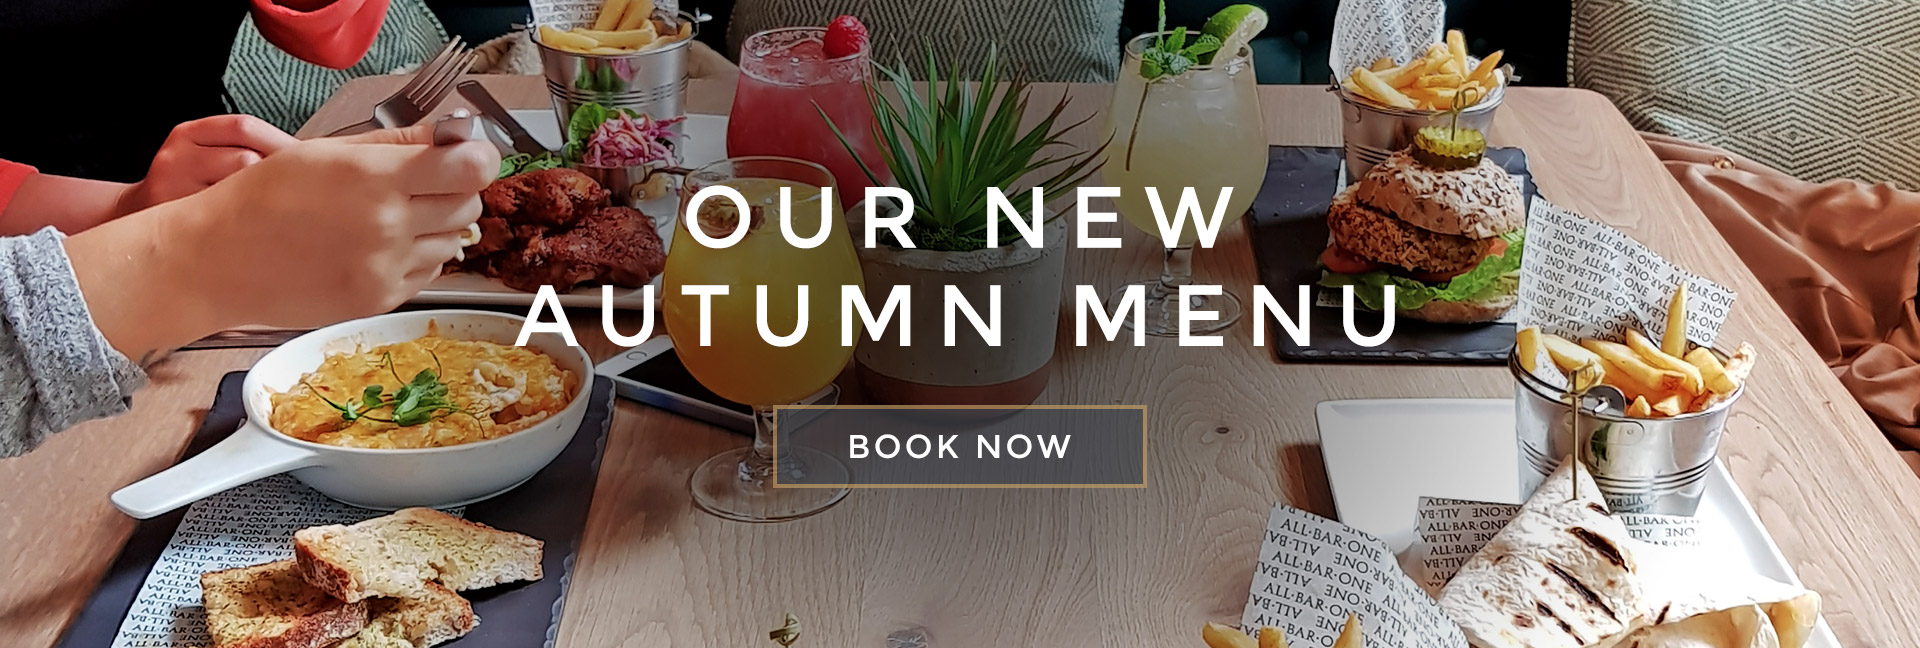 Our new Autumn menu at All Bar One Millennium Square Leeds - Book now